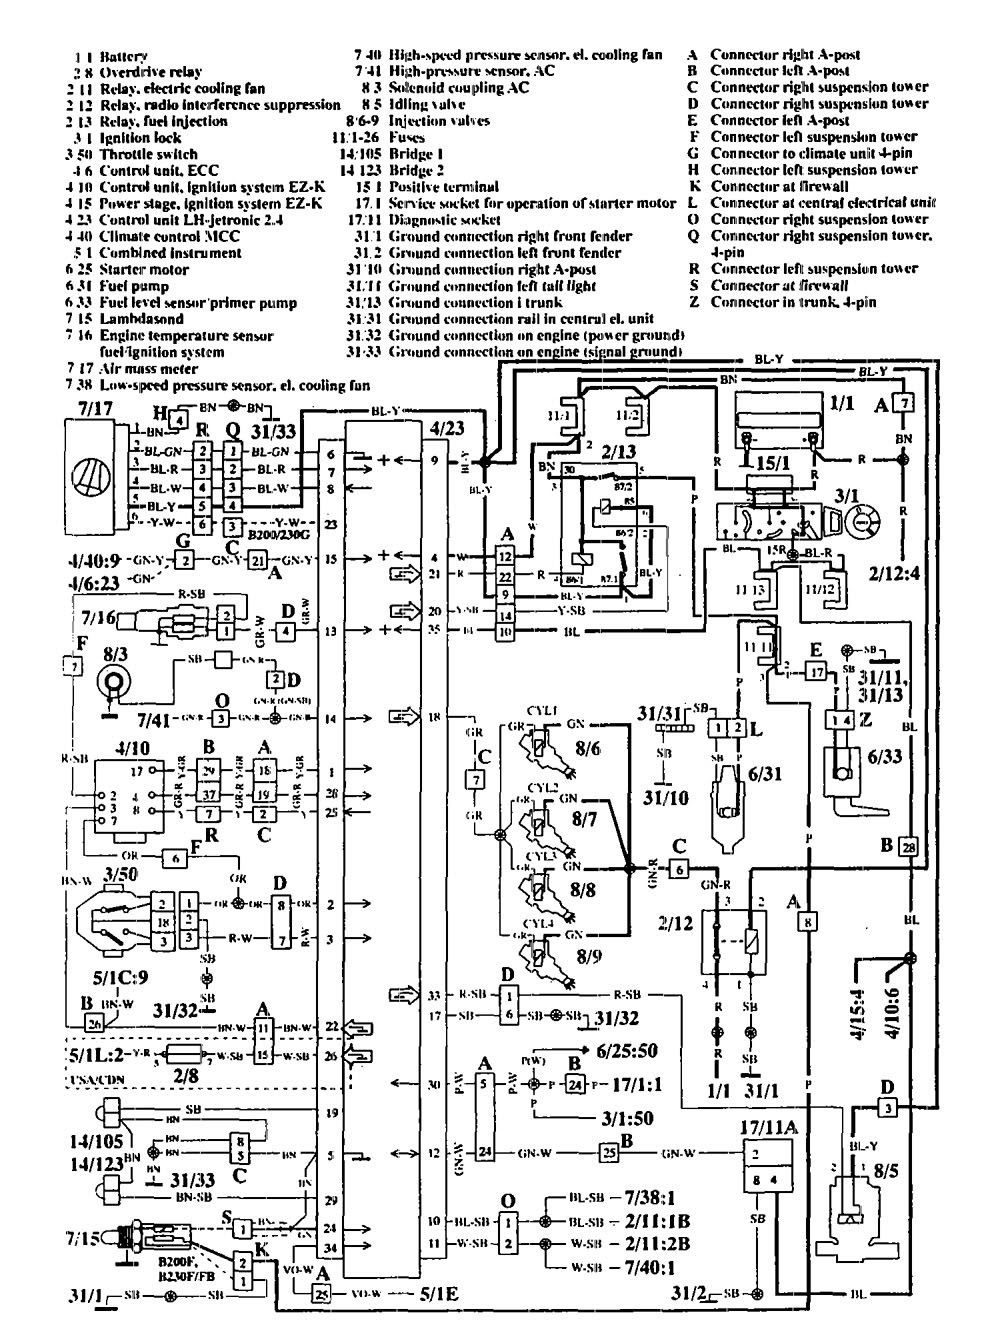 1995 Volvo 940 Ac Wiring Diagram - Wiring Diagram Data hear-menu -  hear-menu.portorhoca.it | Volvo 940 Ac Wiring Diagram |  | portorhoca.it